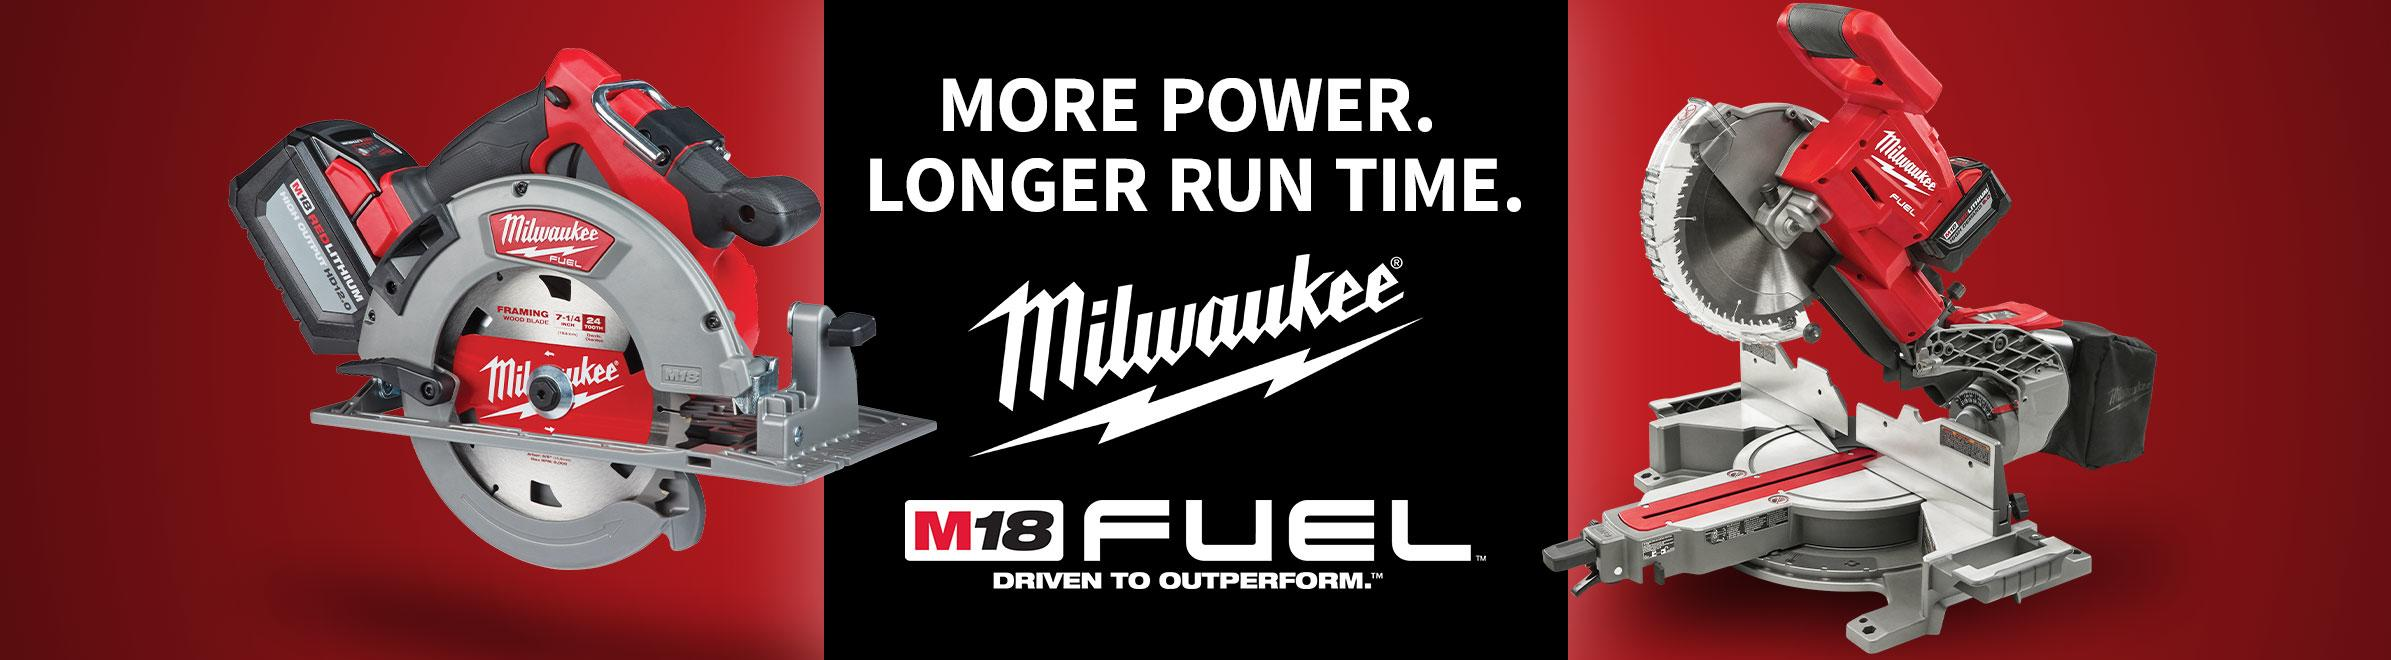 Milwaukee M18 Fuel